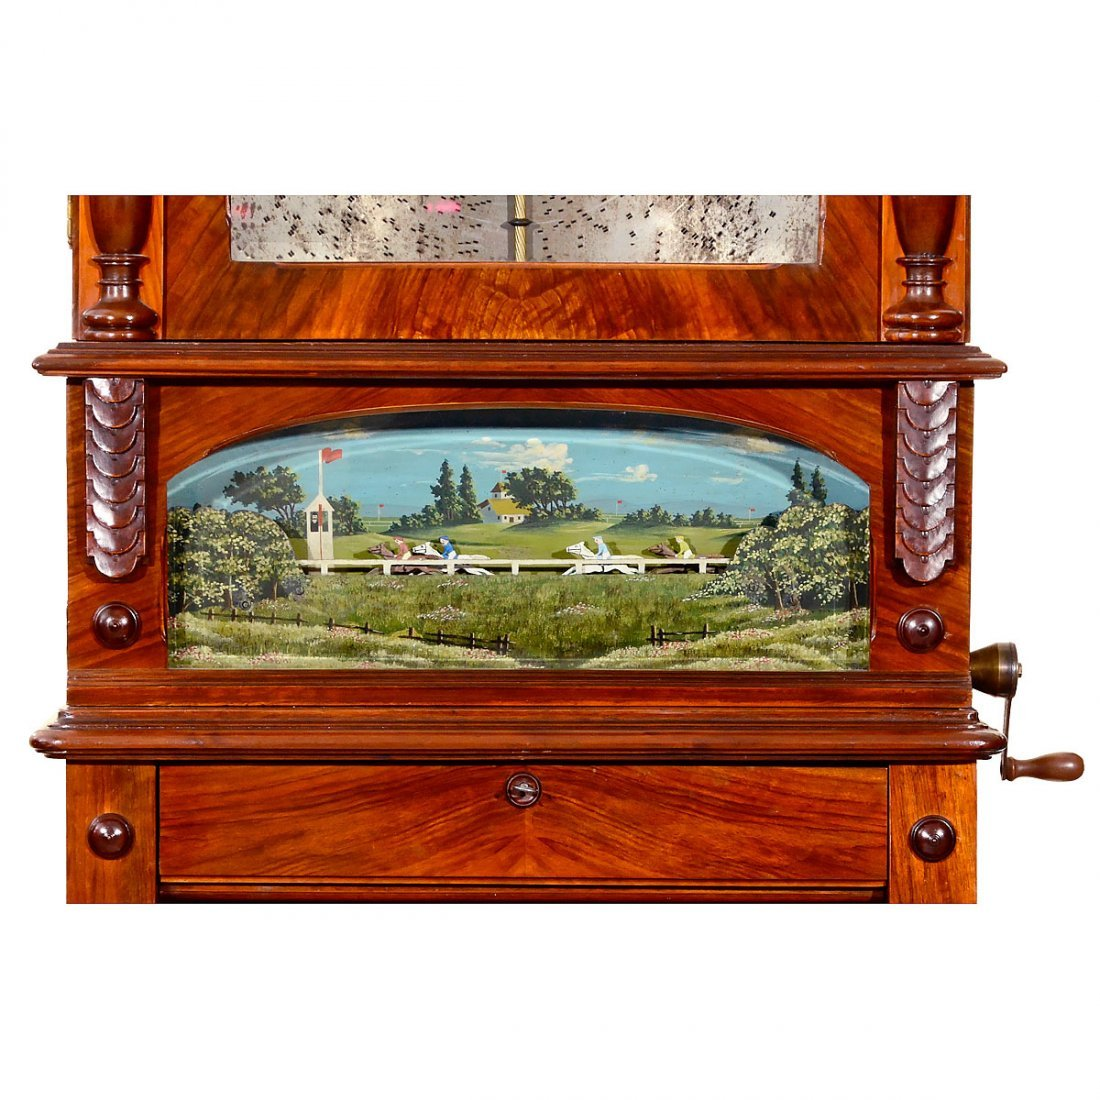 Kalliope Horse Race Panorama Disc Musical Box, c. 1900 - 2